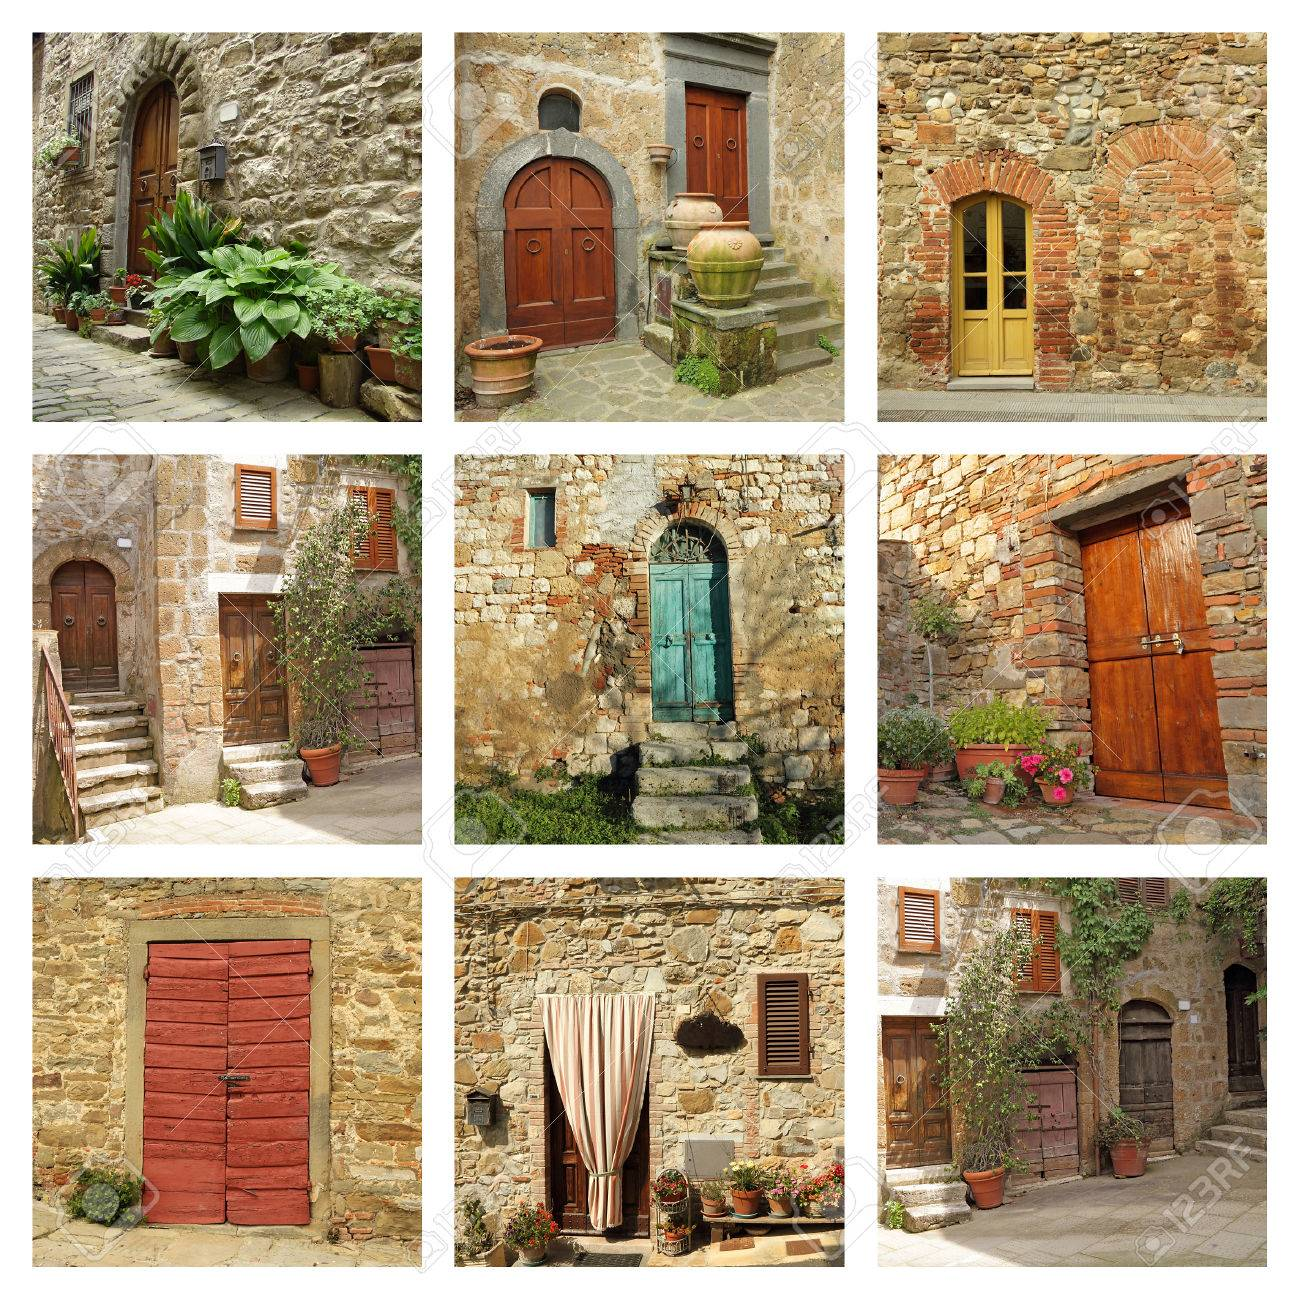 rustic tuscan doors collection Stock Photo - 25327845  sc 1 st  123RF.com & Rustic Tuscan Doors Collection Stock Photo Picture And Royalty Free ...